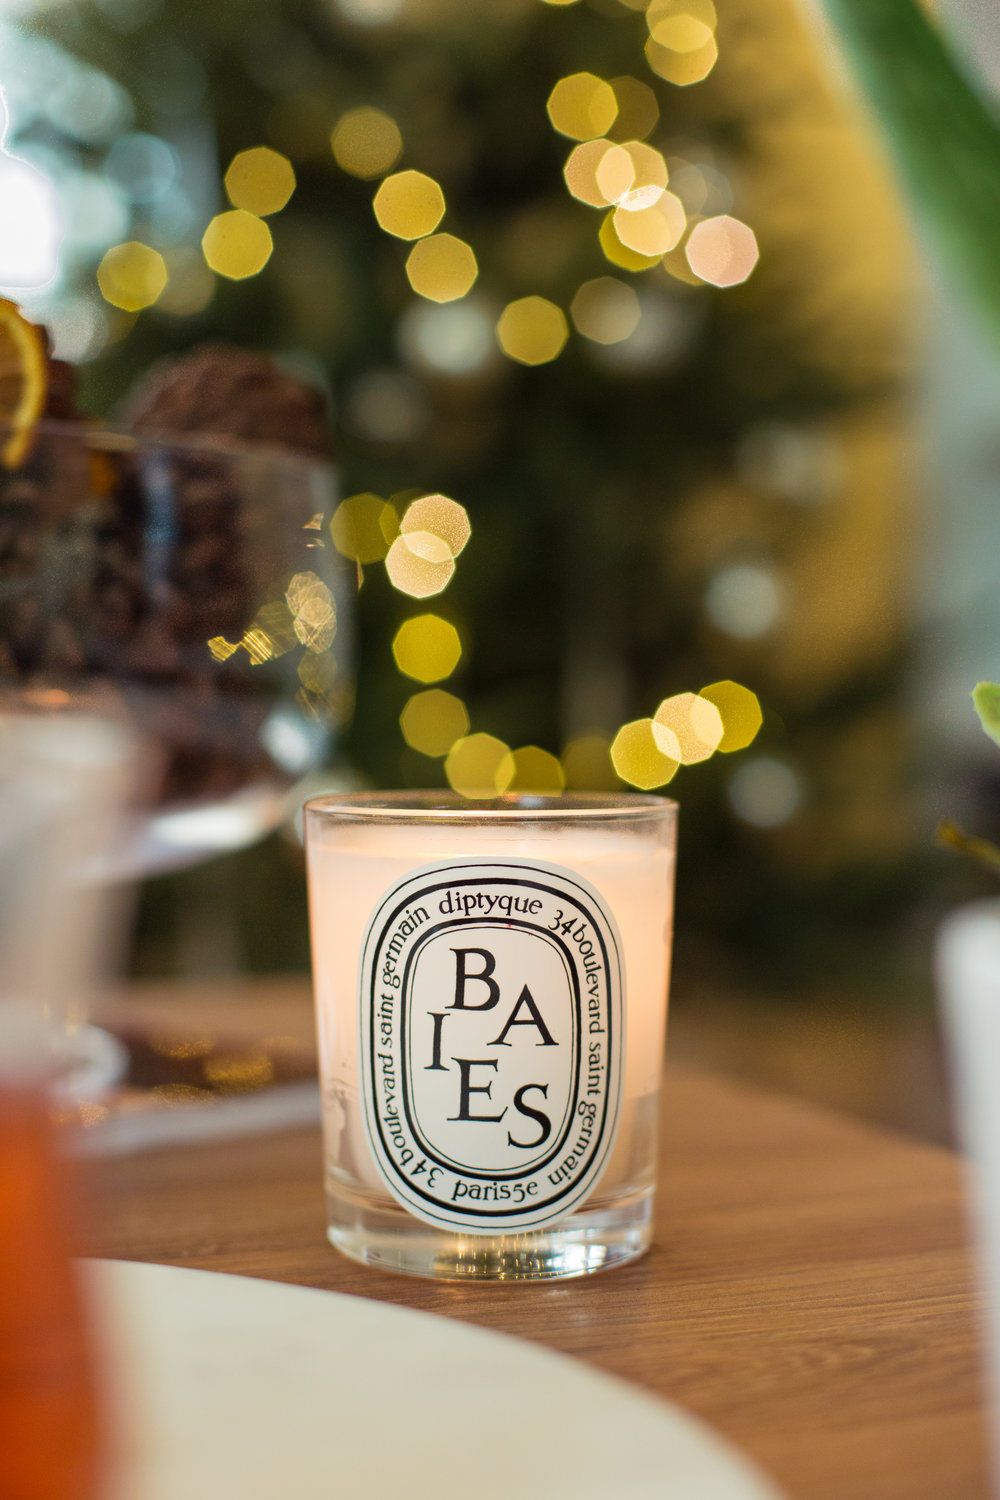 Baies Diptyque Scented Candle